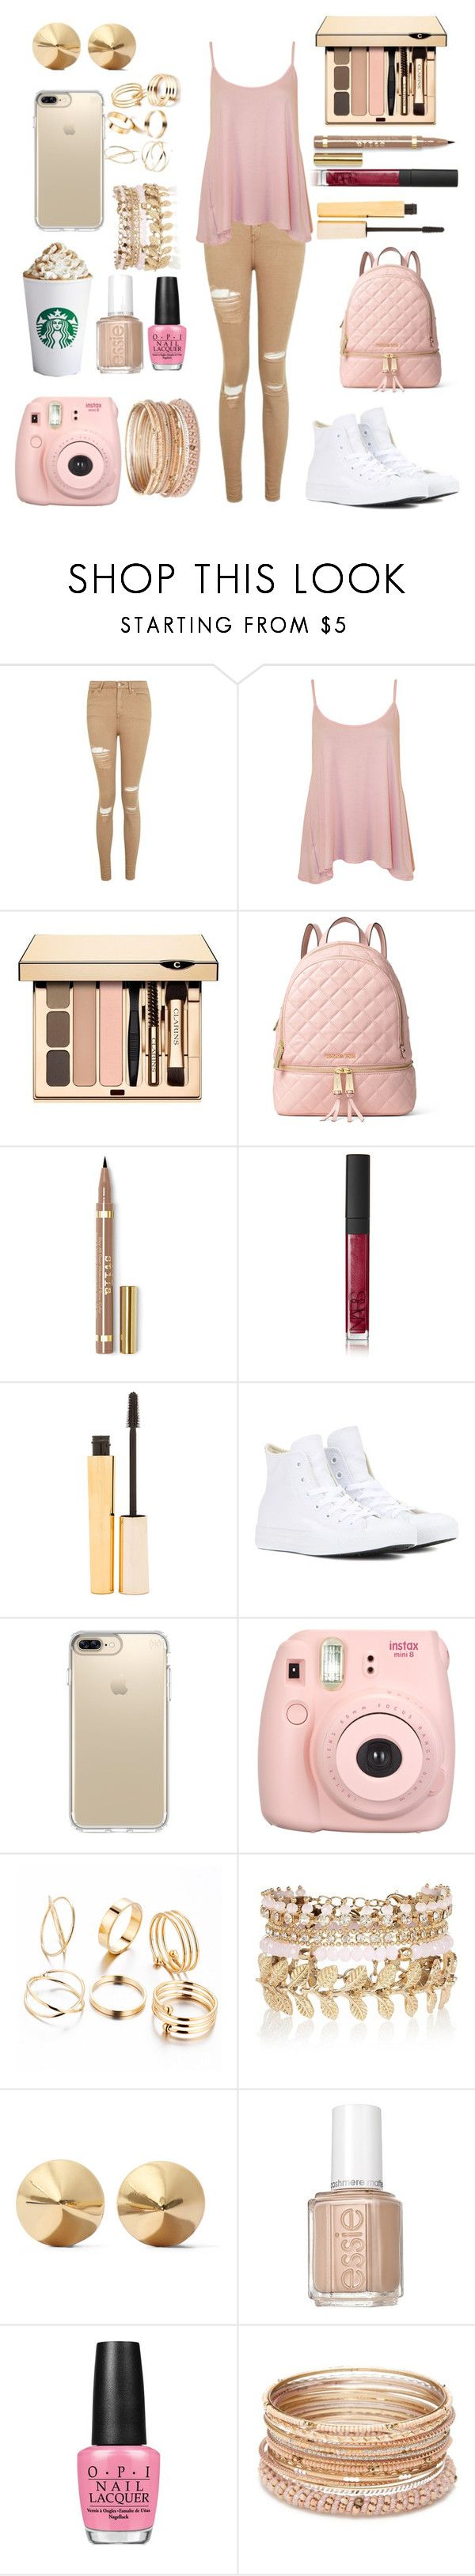 """""""Blush and Gold + anyone want to collab"""" by crystalgems125 ❤ liked on Polyvore featuring Topshop, WearAll, Clarins, MICHAEL Michael Kors, NARS Cosmetics, Stila, Converse, Speck, Fujifilm and River Island"""